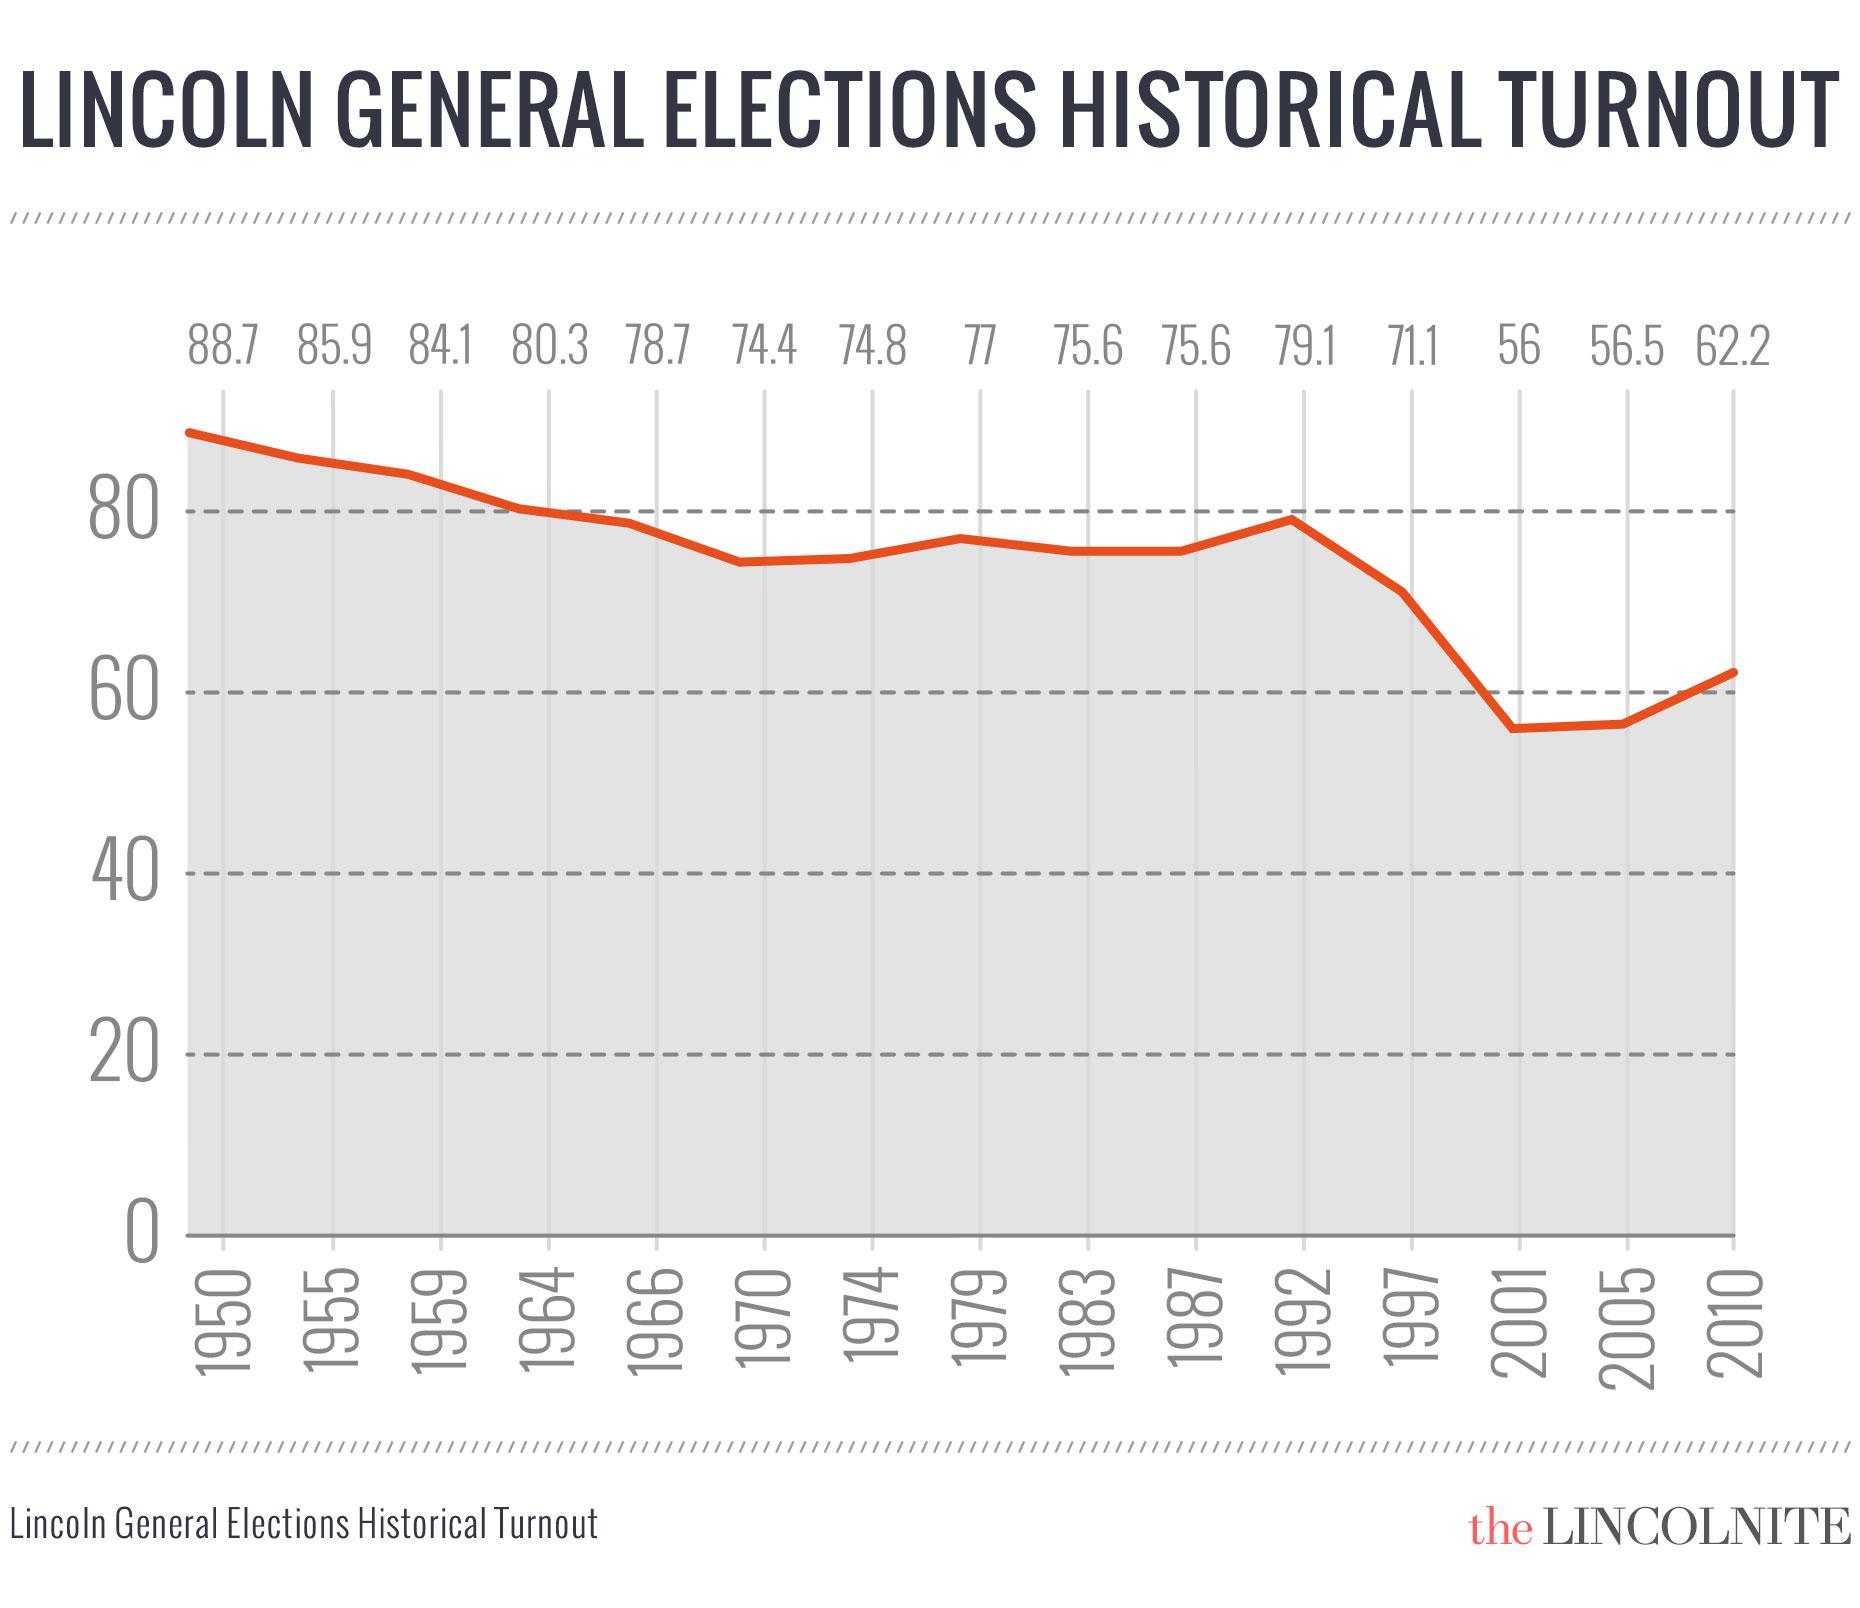 The general election turnouts over the years in Lincoln. (Click to enlarge)